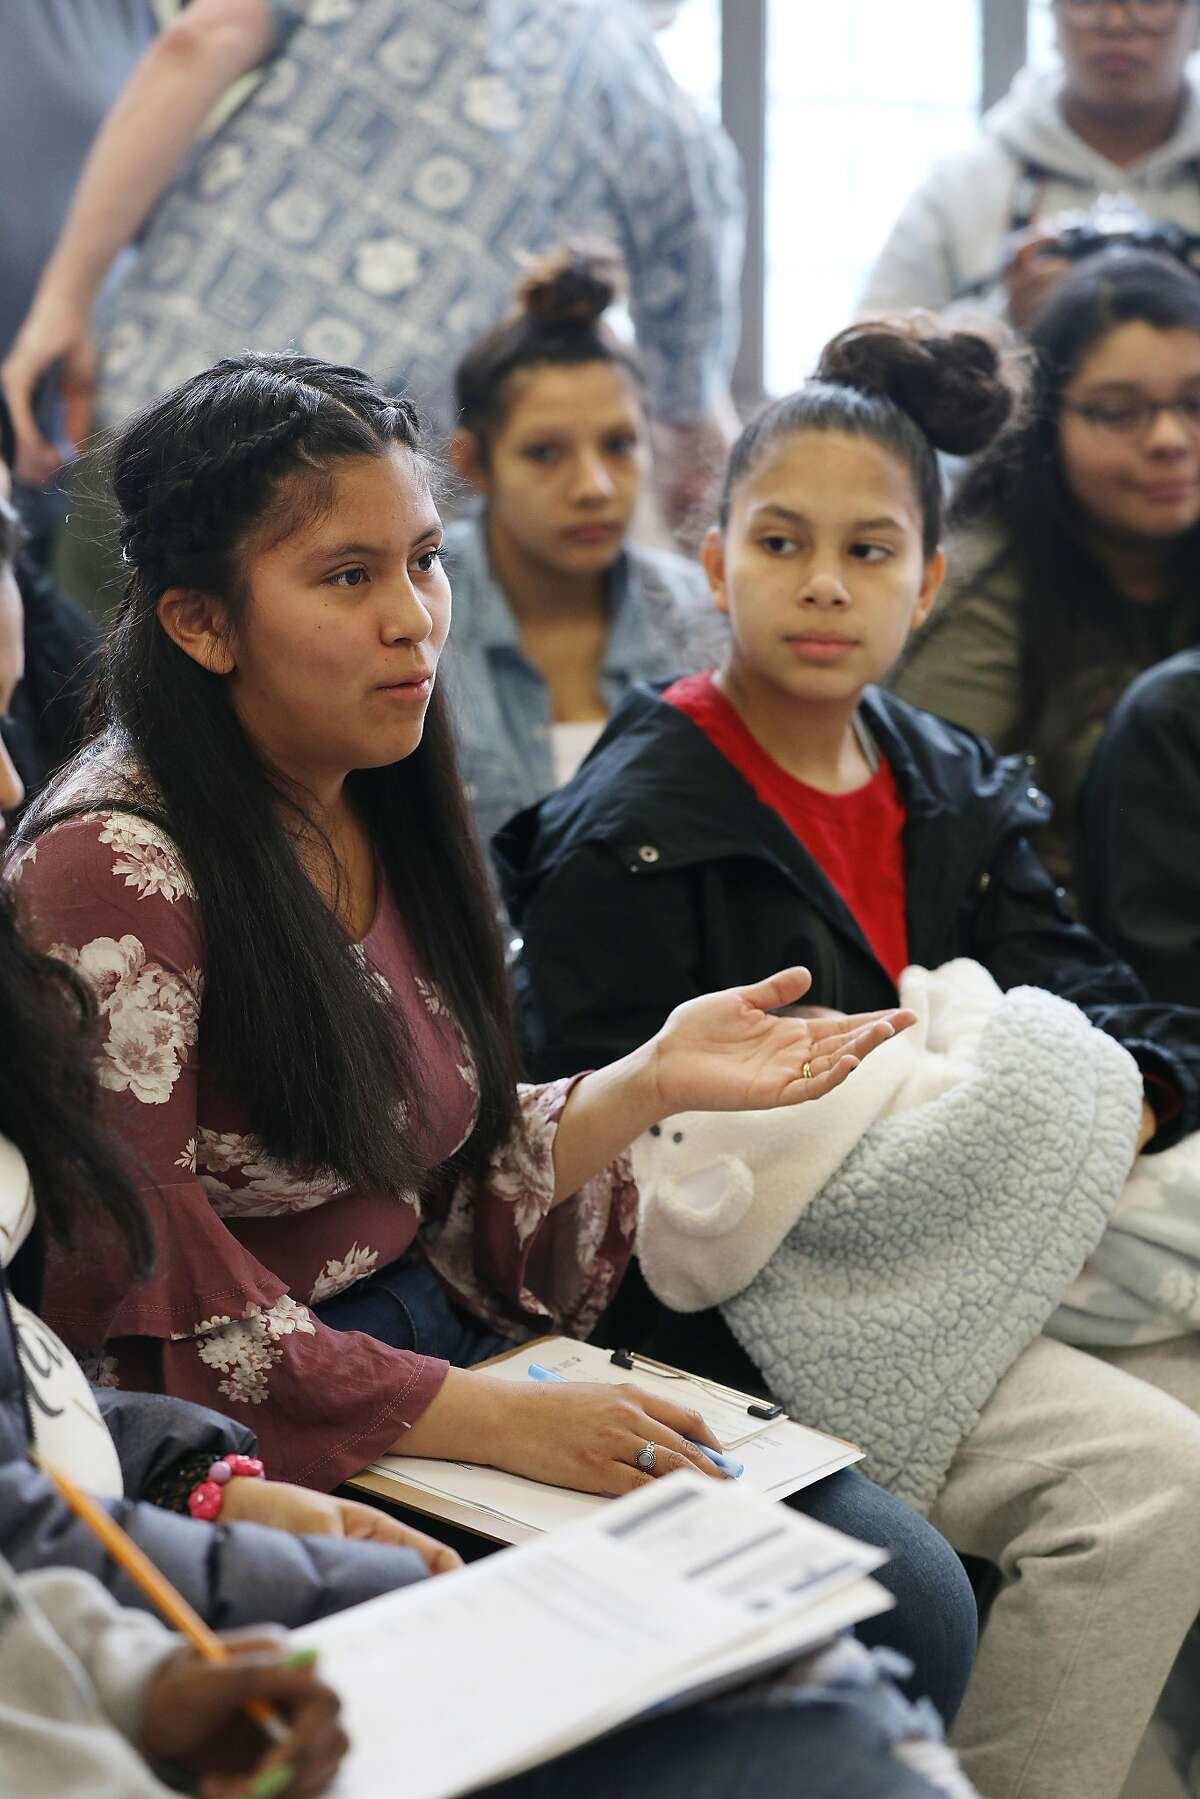 Hilltop High School student Carolina Orozco (left), 18 talks to Mayor London Breed (not shown) as Mayor Breed speaks with students at Hilltop High School on Wednesday, December 5, 2018 in San Francisco, Calif.